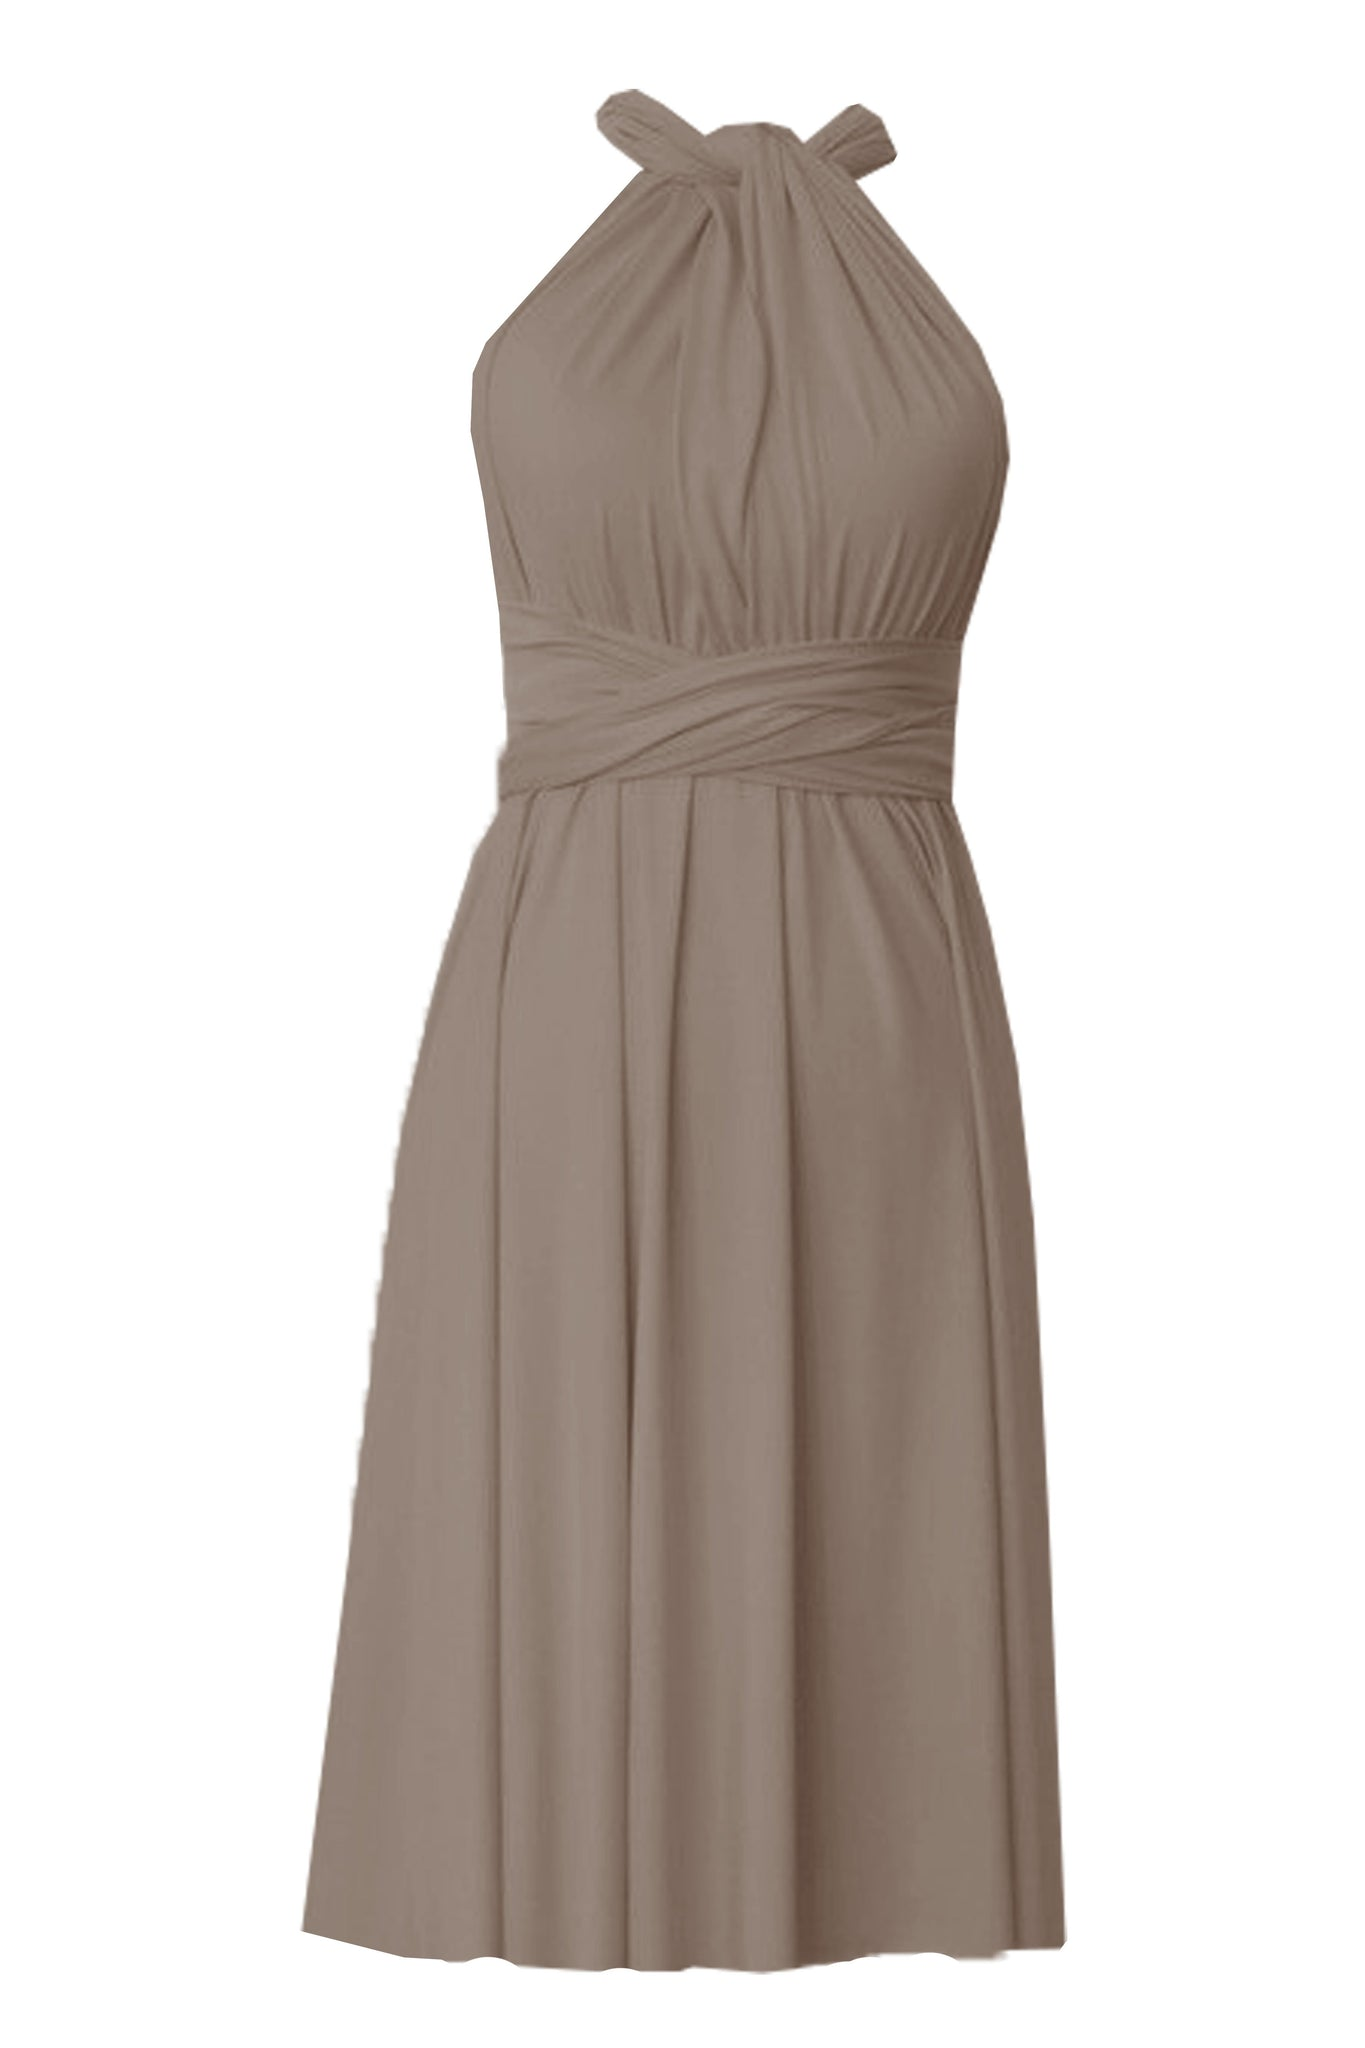 Infinity bridesmaids dress Taupe convertible knee length dress Plus size prom evening formal dress XS S M L XL 0XL 1XL 2XL 3XL 4XL 5XL